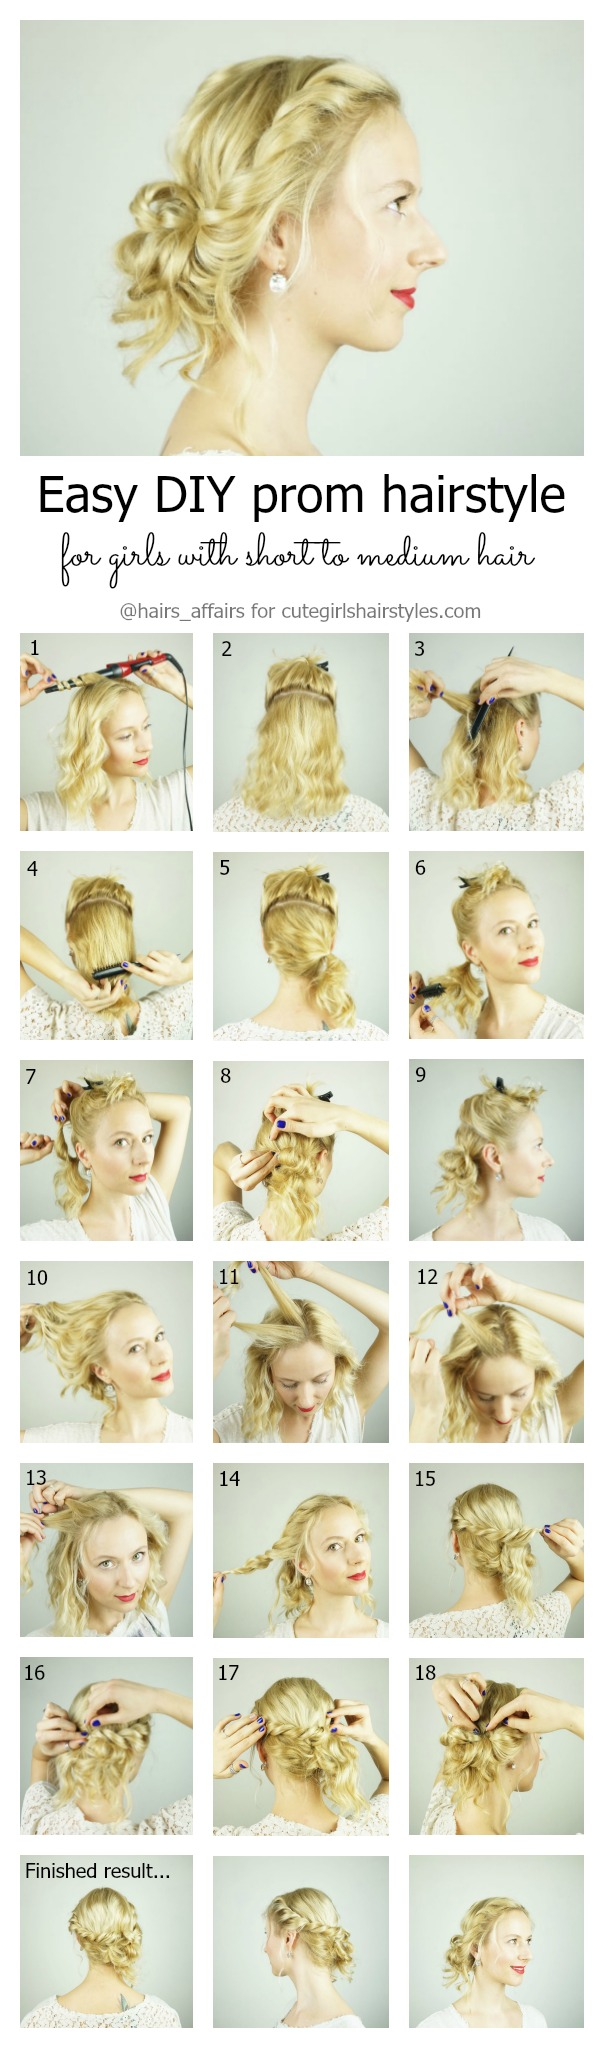 Easy diy prom hairstyle for girls with short to medium hair with prom hairstyles solutioingenieria Image collections